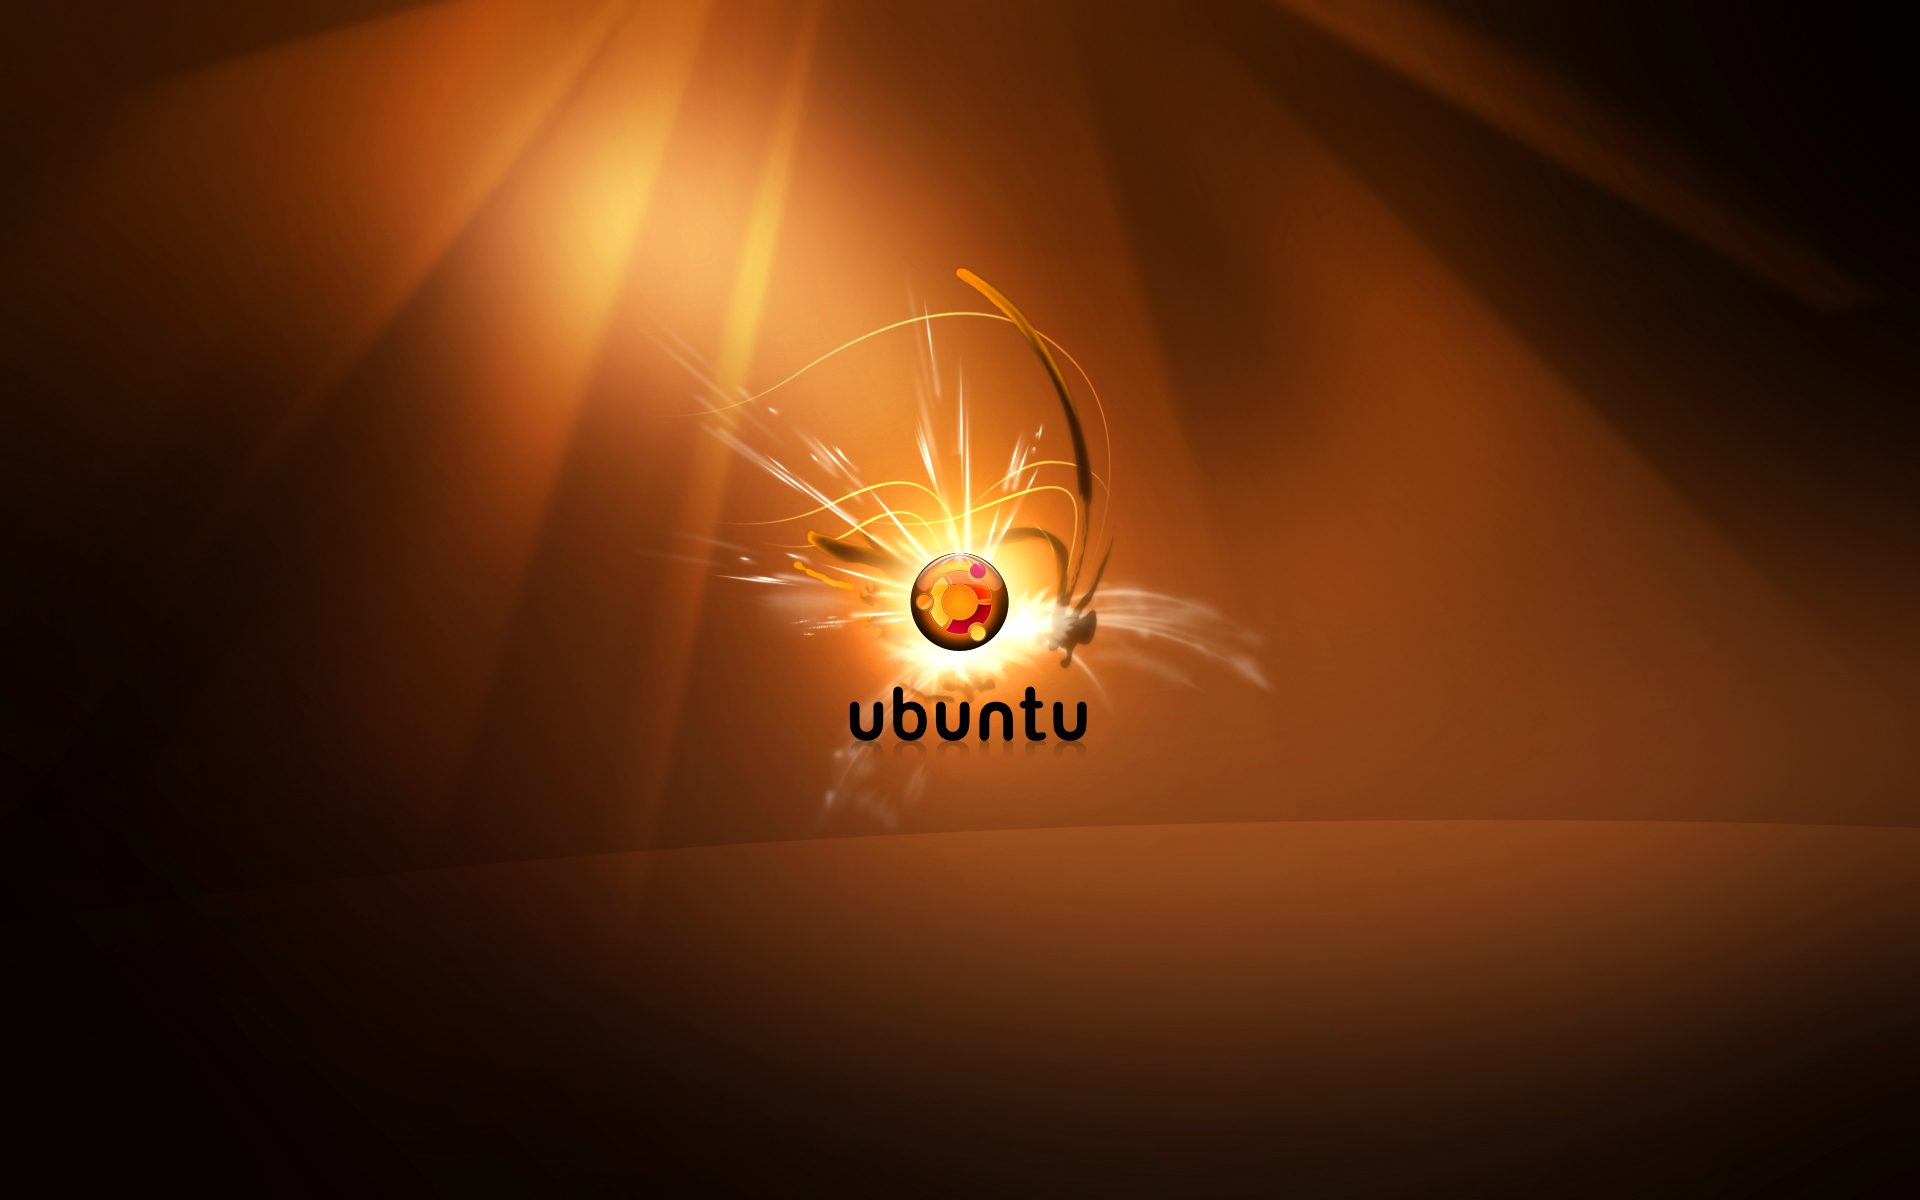 50 Incredible Ubuntu Wallpaper Collection   Technosamrat 1920x1200